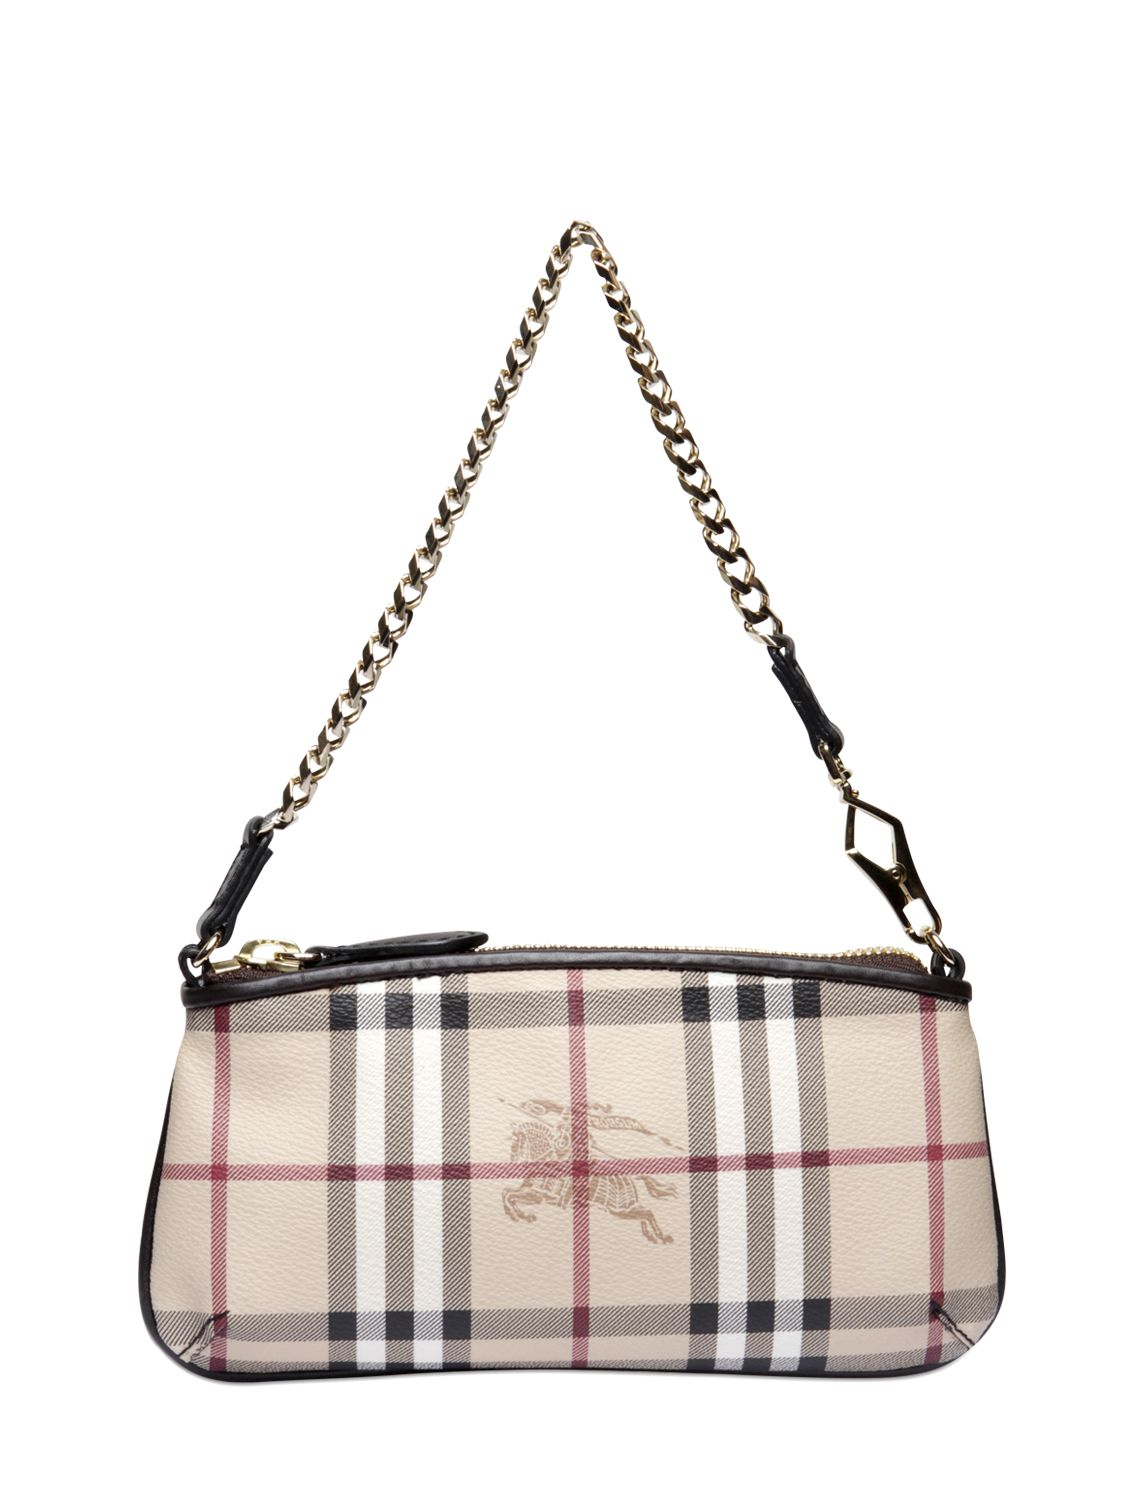 50bfe0b0a208 Lyst - Burberry Clara Haymarket Checked Shoulder Bag in Natural